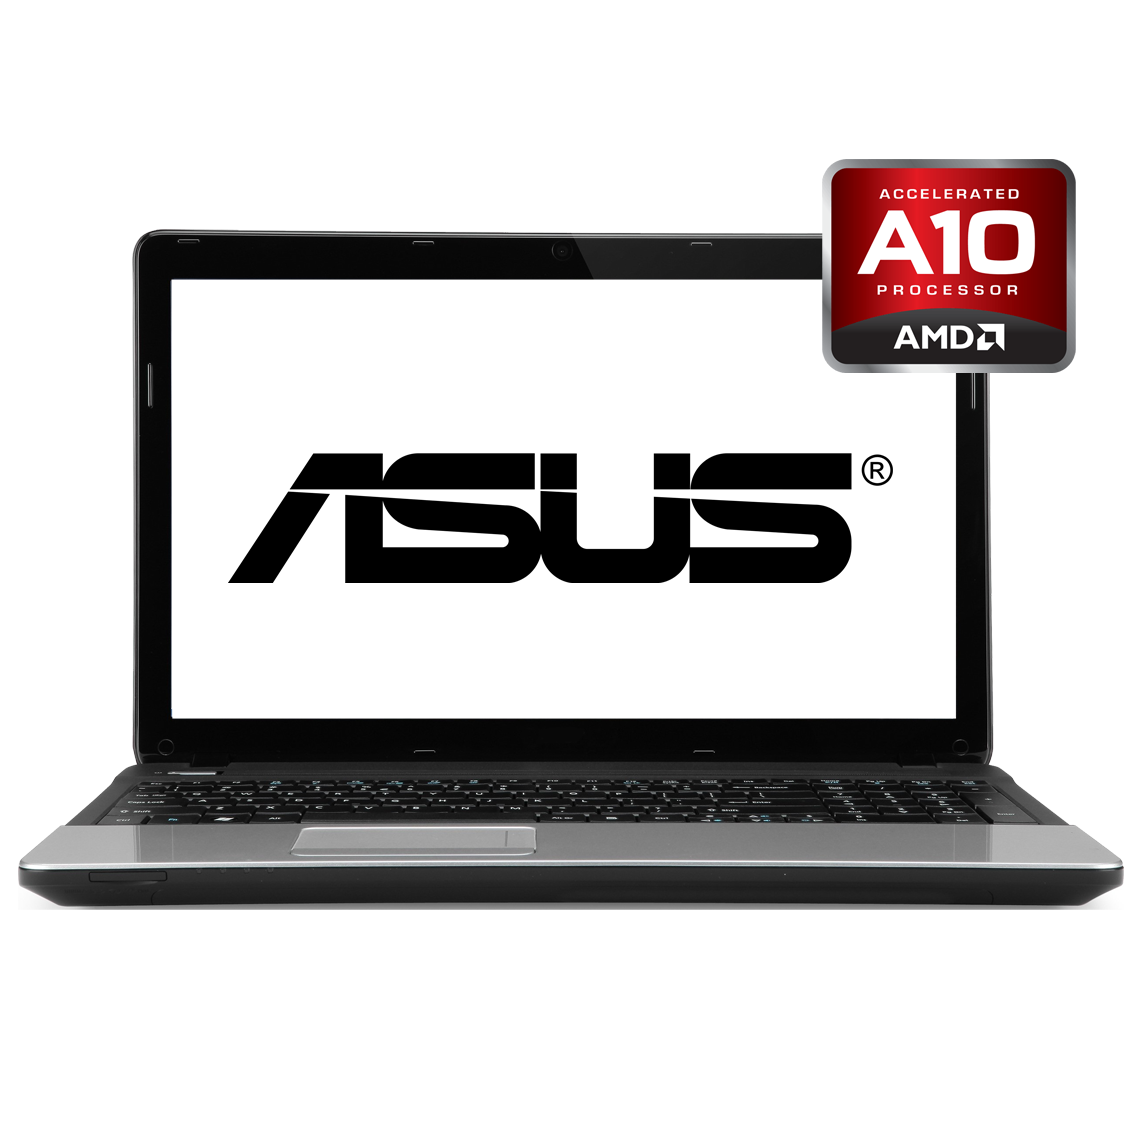 ASUS - 17.3 inch AMD A10